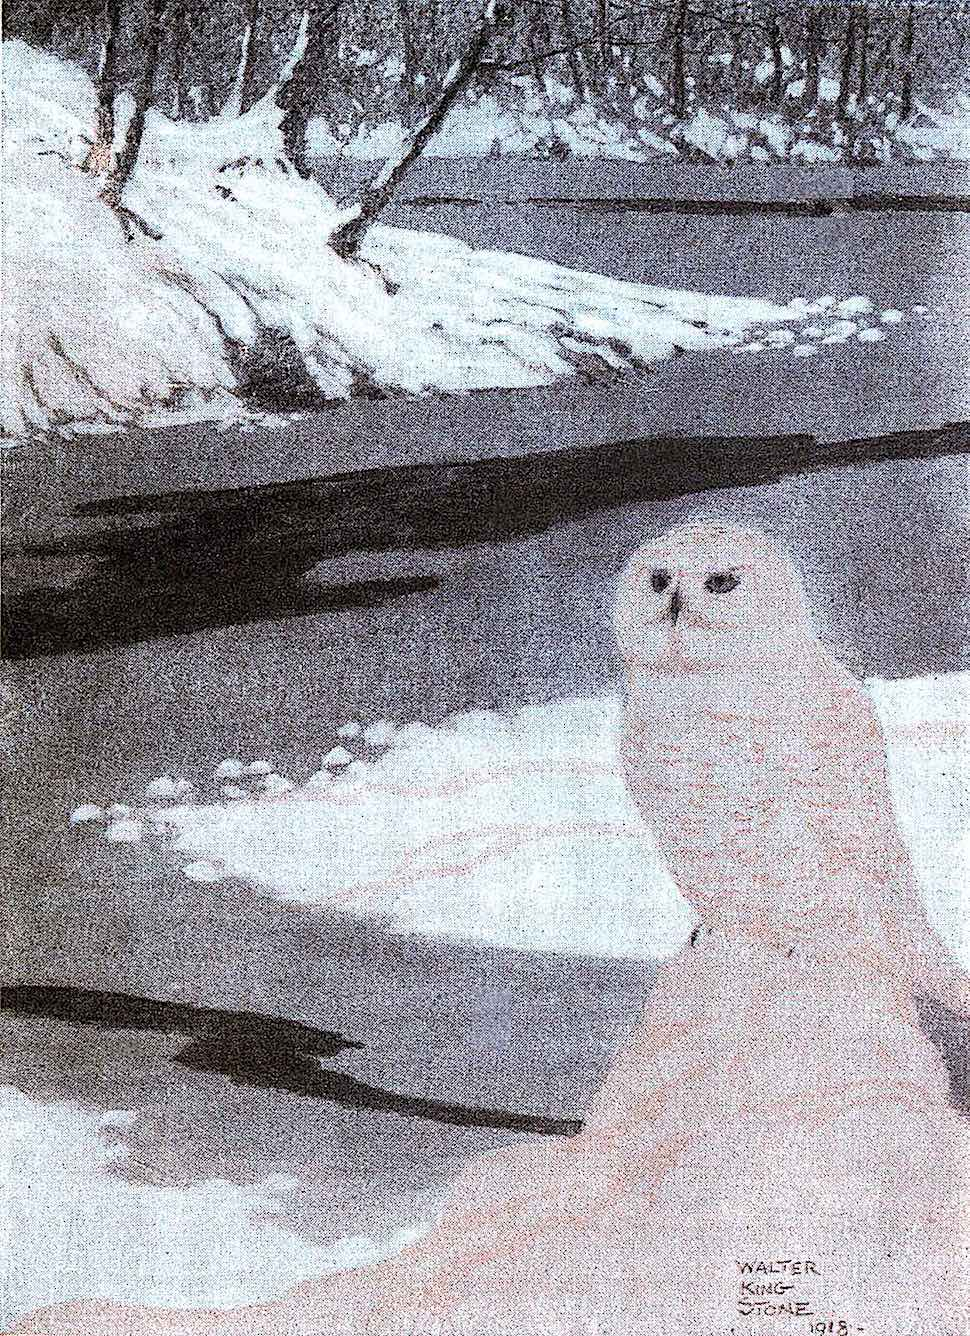 a 1918 Walter King Stone illustration of a white owl in winter